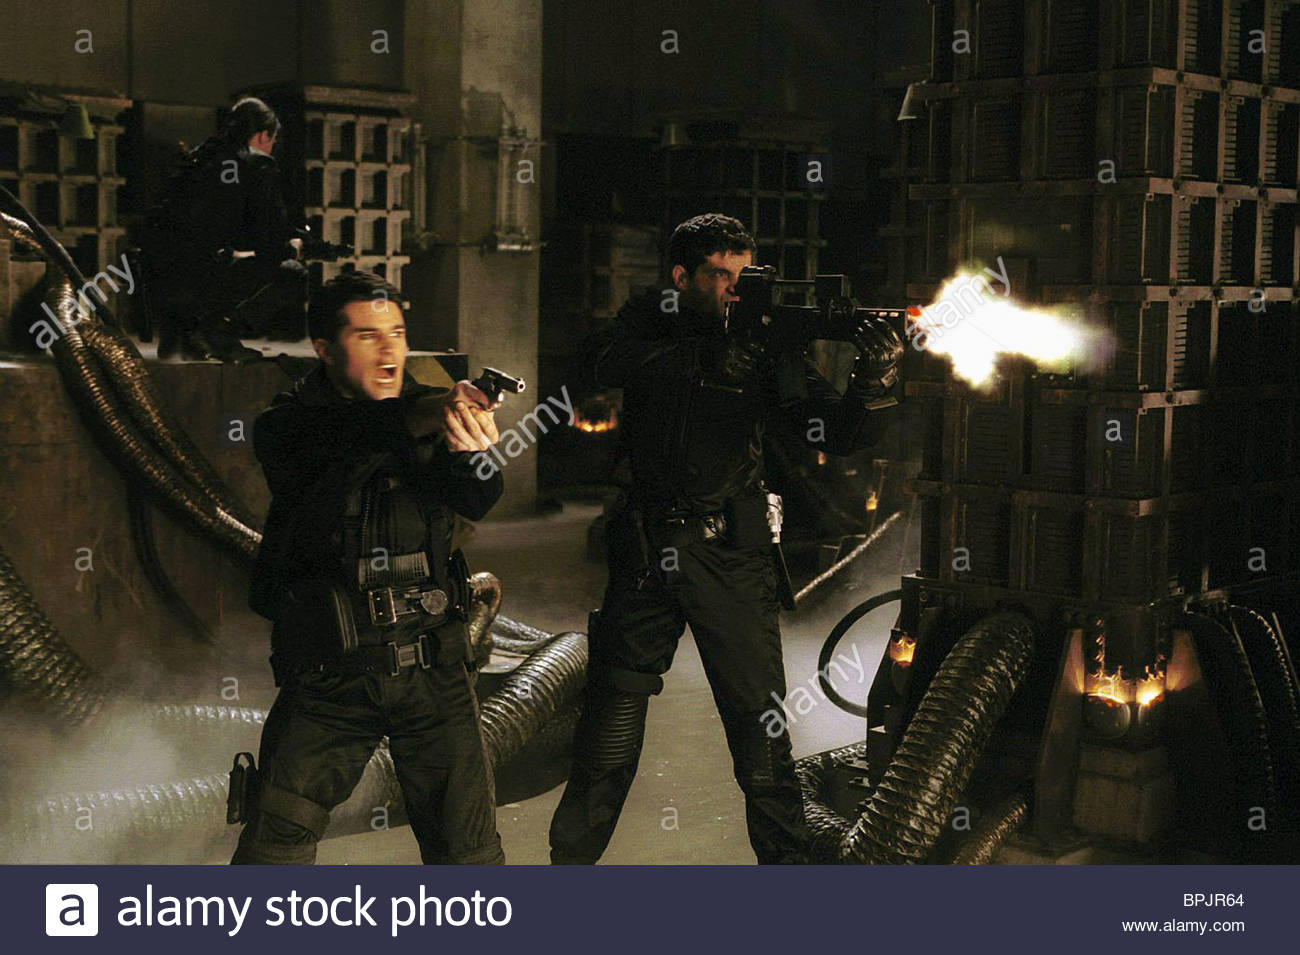 MARTIN CREWES RESIDENT EVIL (2002) - Stock Image